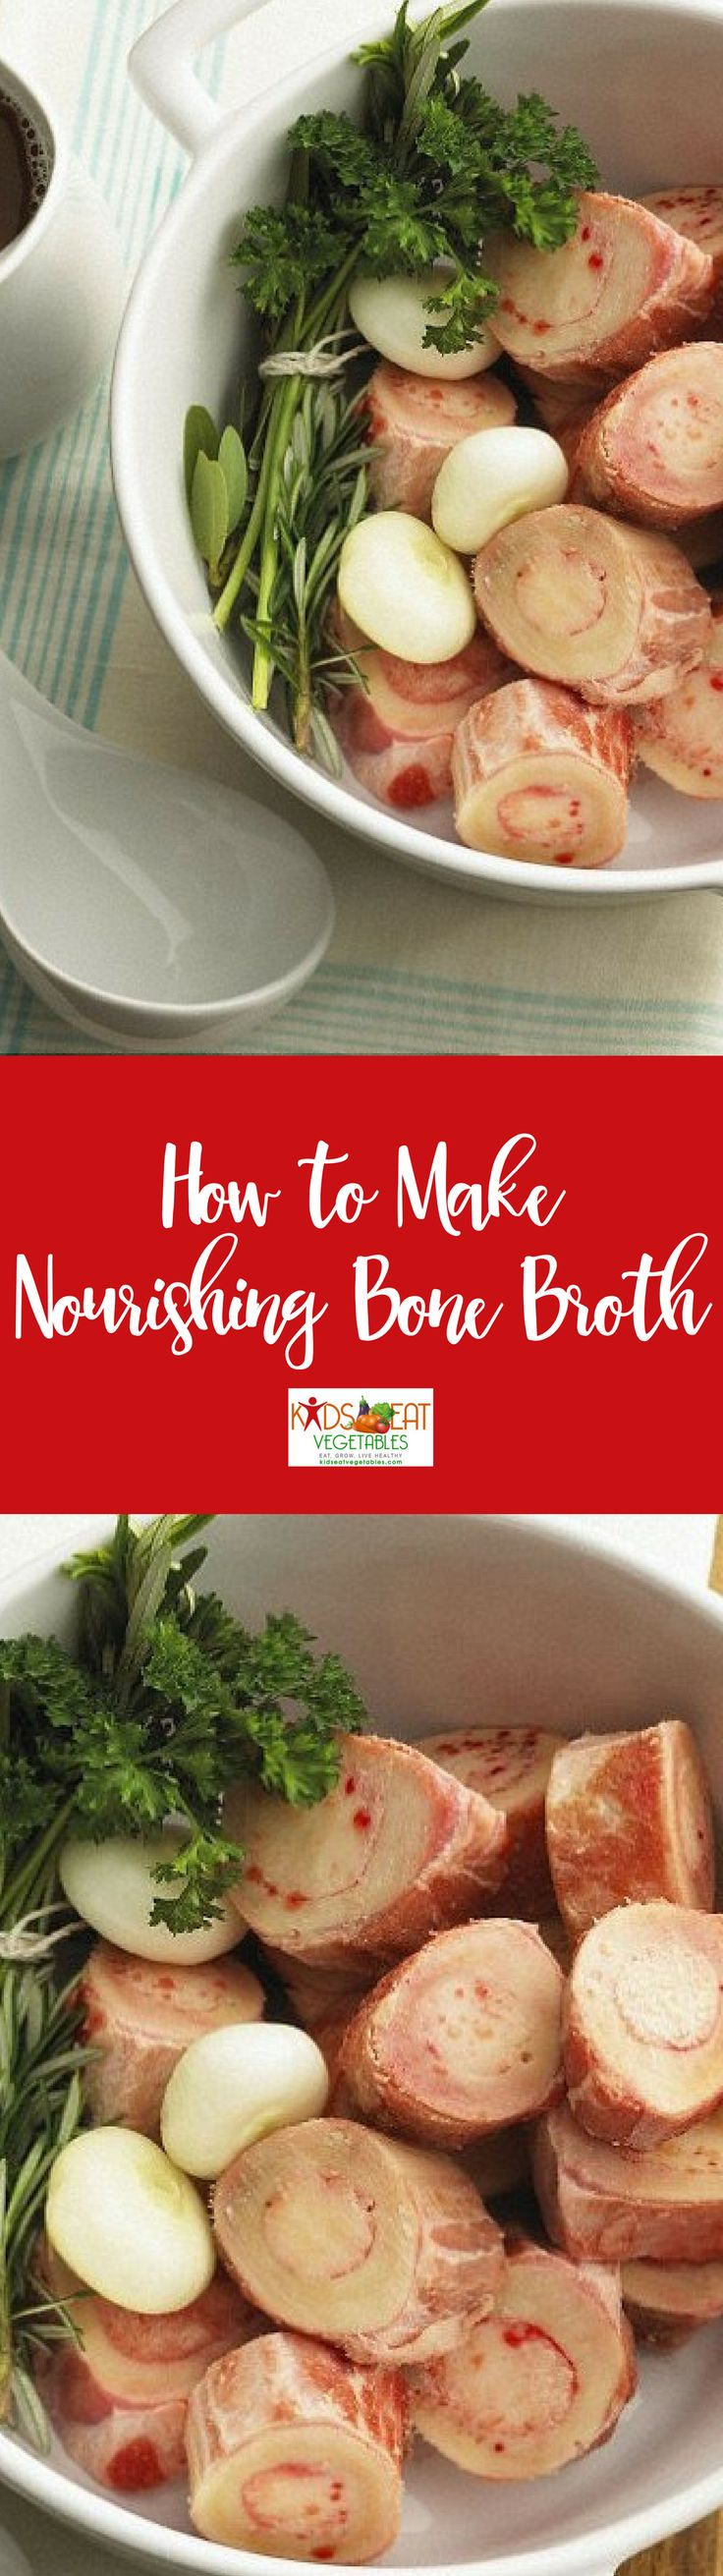 Bone broth is essential to have on hand as we head into cold and flu season. At the first sign of anyone getting sick in our home I will quickly defrost broth and serve either warm in a mug or in a homemade soup or stew. In cases of stomach bugs or vomiting, bone broth often calms the stomach quickly and helps shorten the duration of the illness.